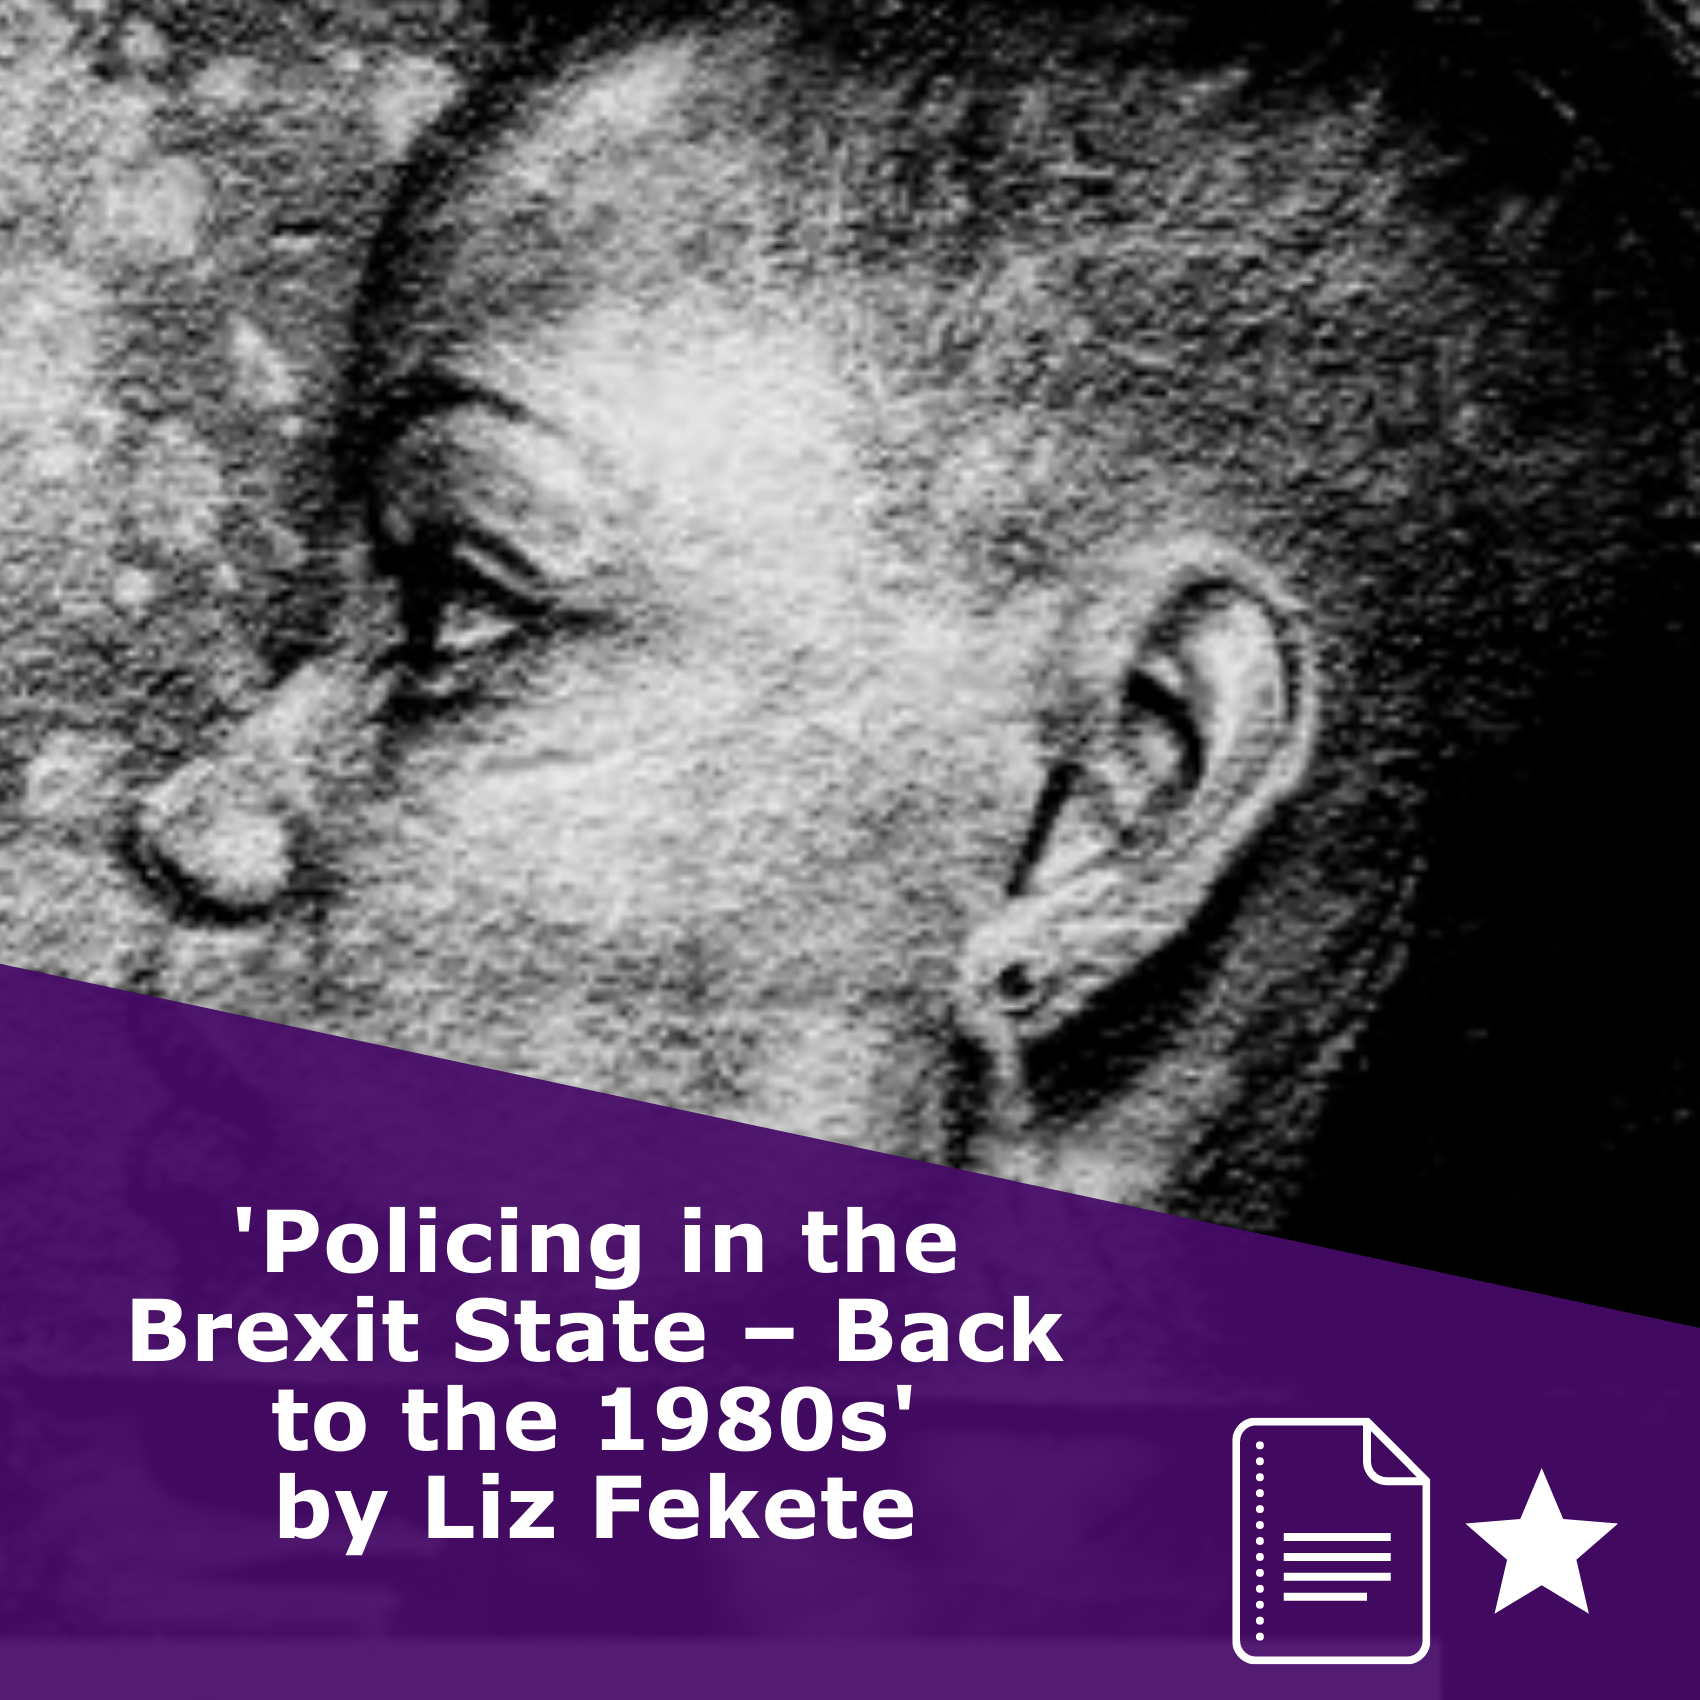 'Policing in the Brexit State – Back to the 1980s' by Liz Fekete, article rated 1 star